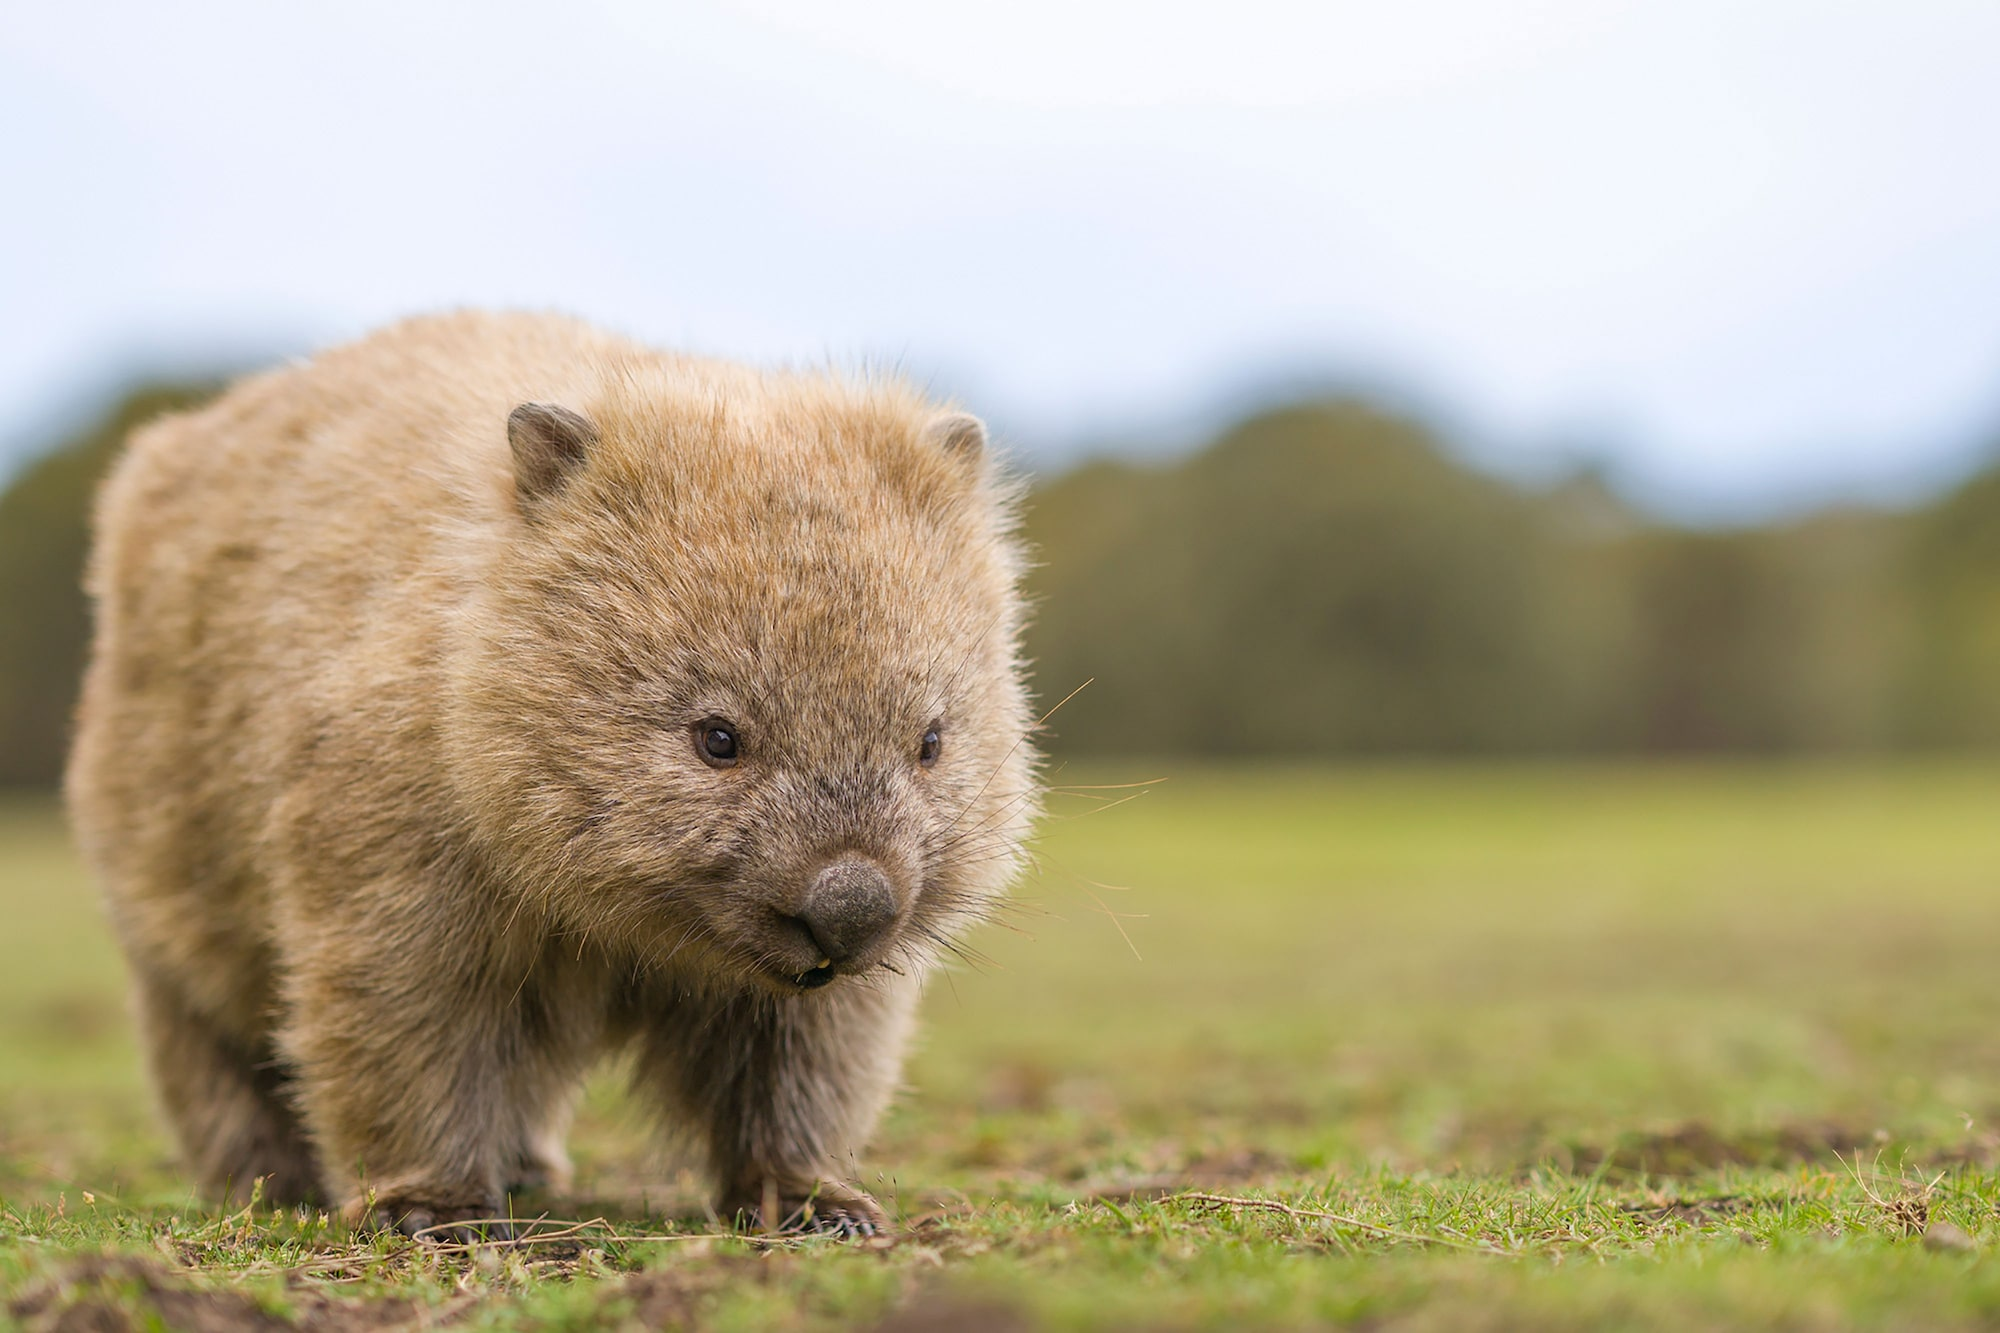 Wombat spotted in Tasmania